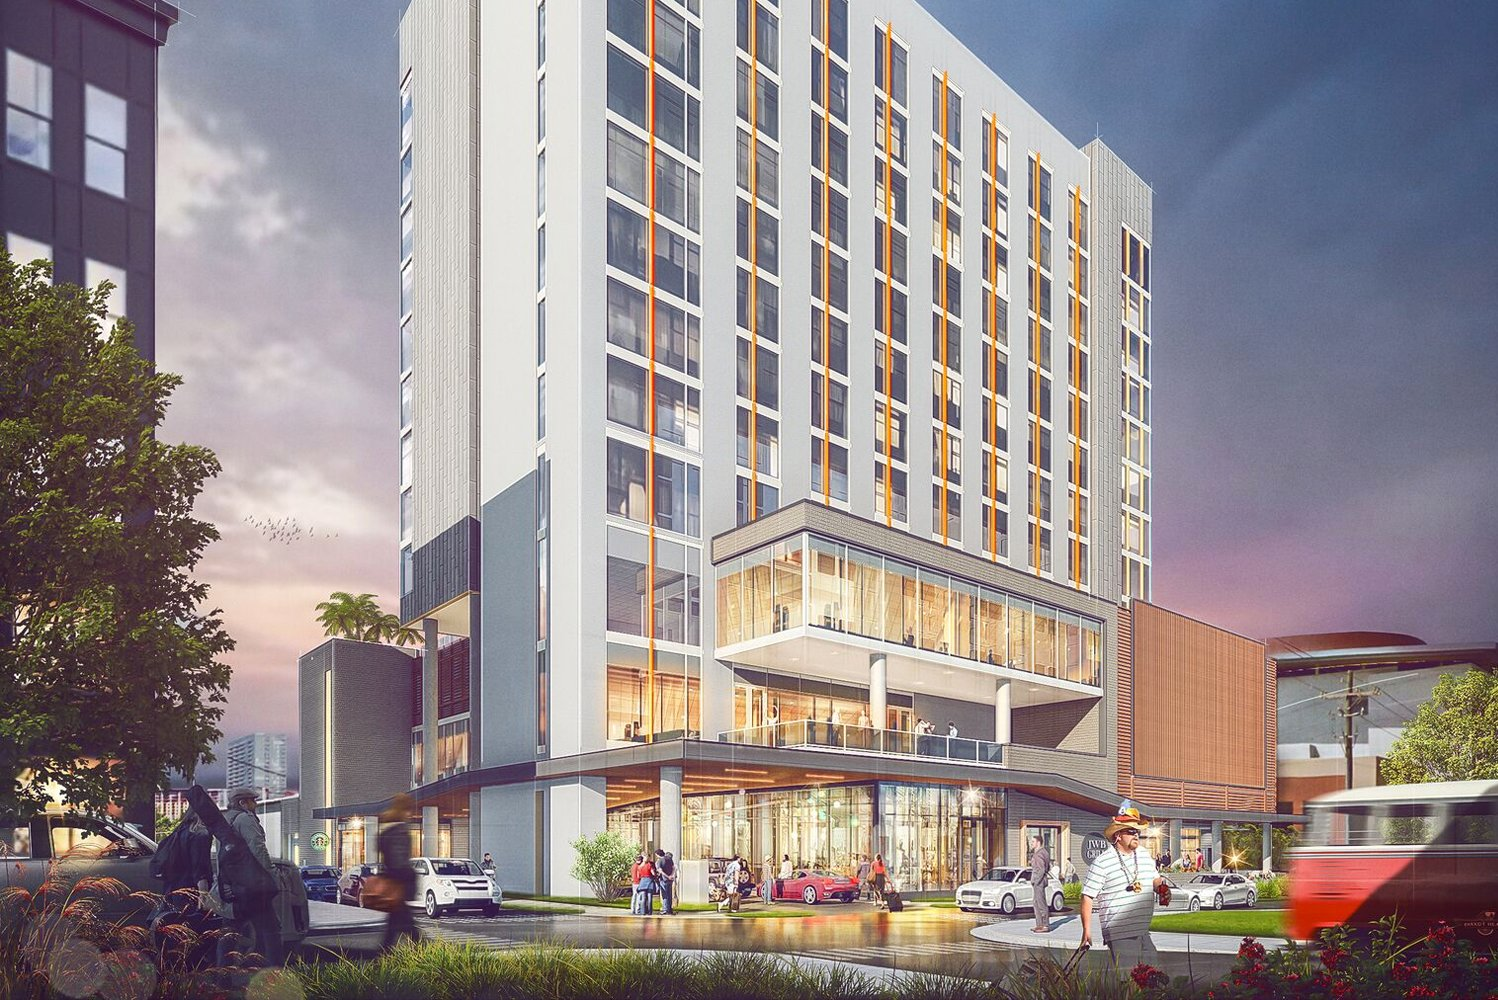 Margaritaville Nashville Hotel is scheduled to open in summer 2019.